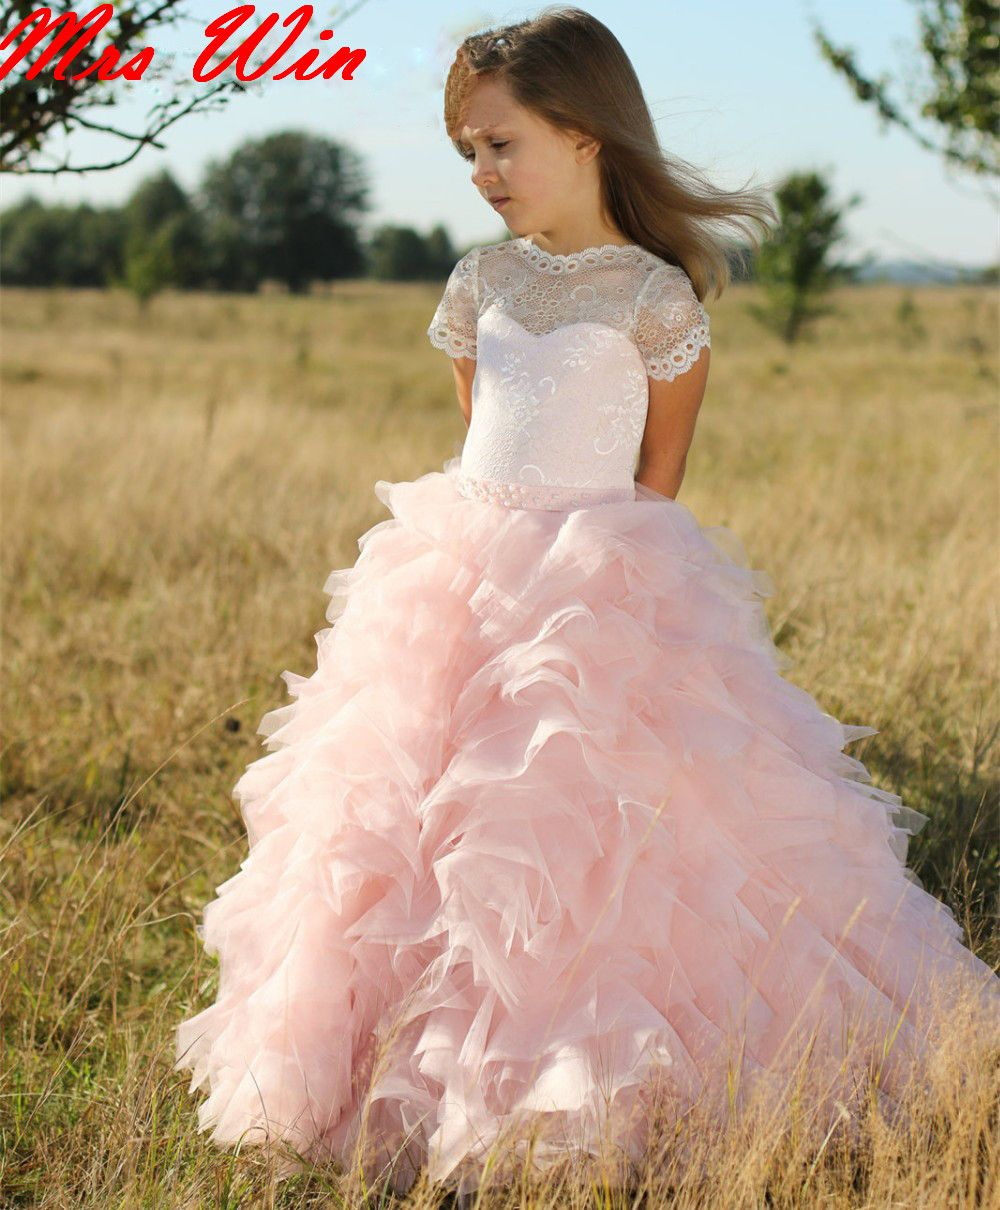 Cute Blush Pink Flower Girl Dresses Organza Ruffled vestidos de ...